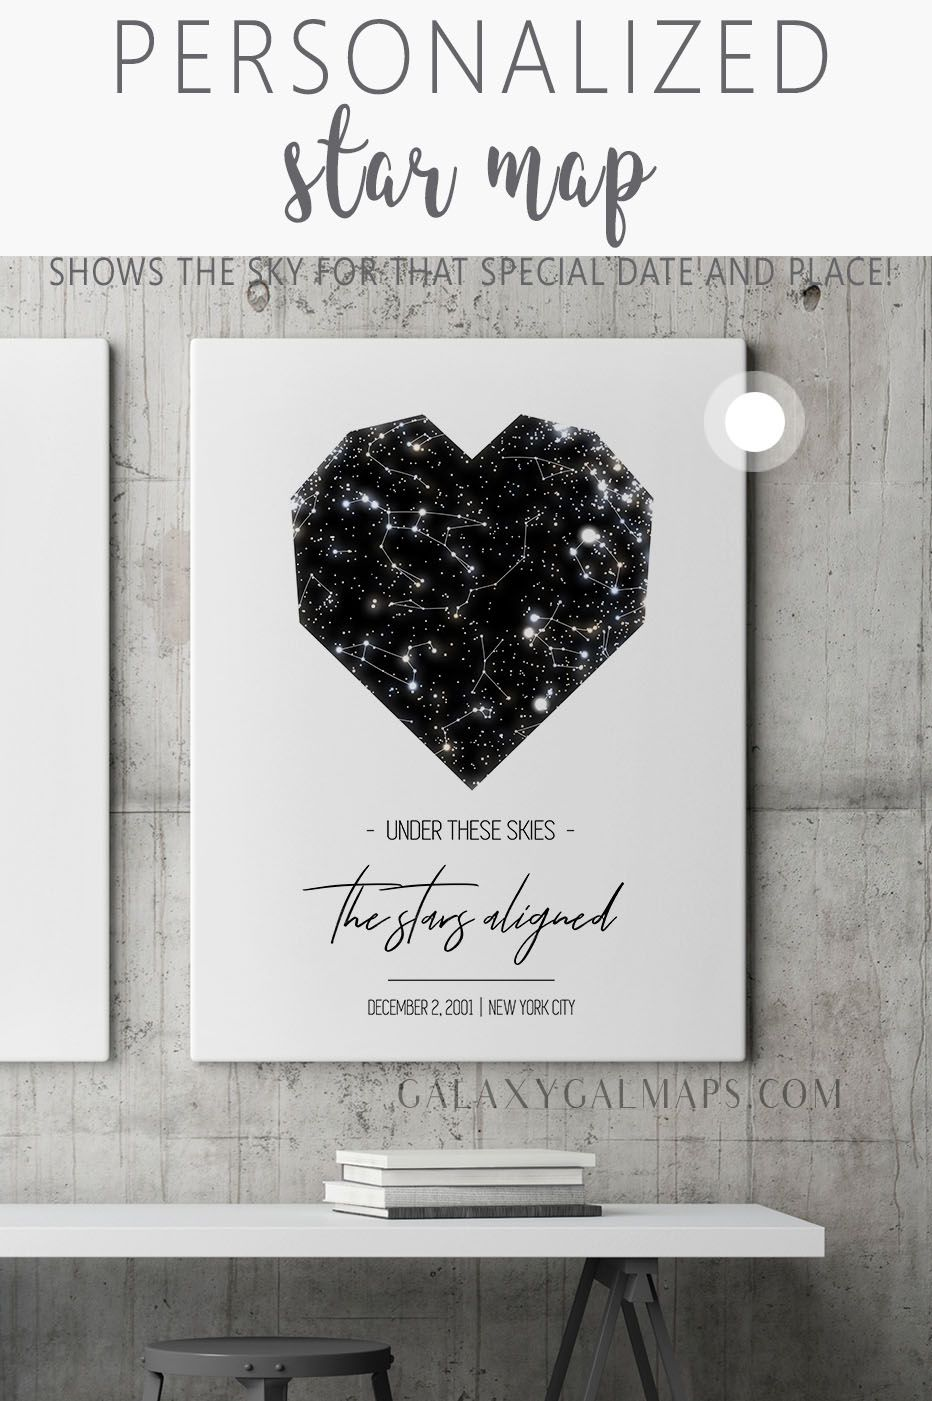 Create Your Star Map For That Special Date Scandinavian Design Gemini Constellation Astronomy Art Print Nig Star Map Scandinavian Design Astronomy Design